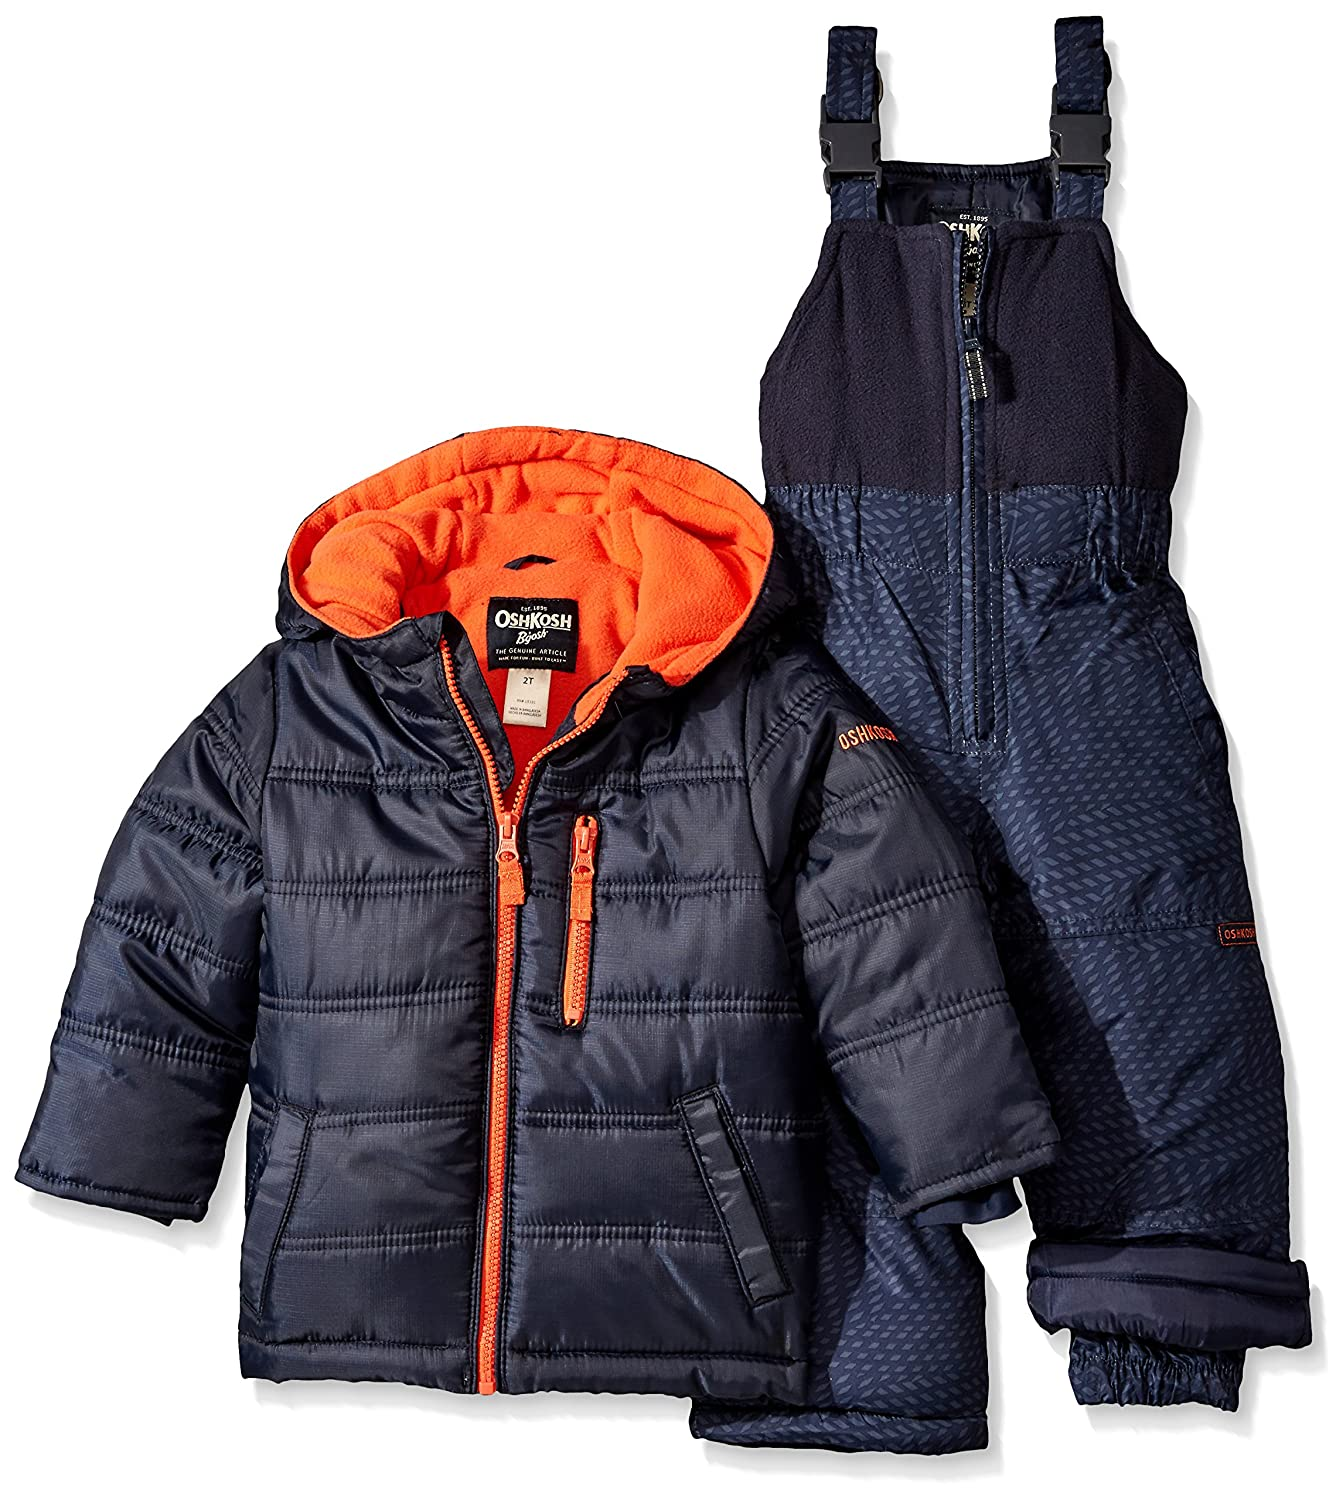 OshKosh B'Gosh Osh Kosh Boys' Snowsuit with Puffer Coat Camo 4 B2158S93